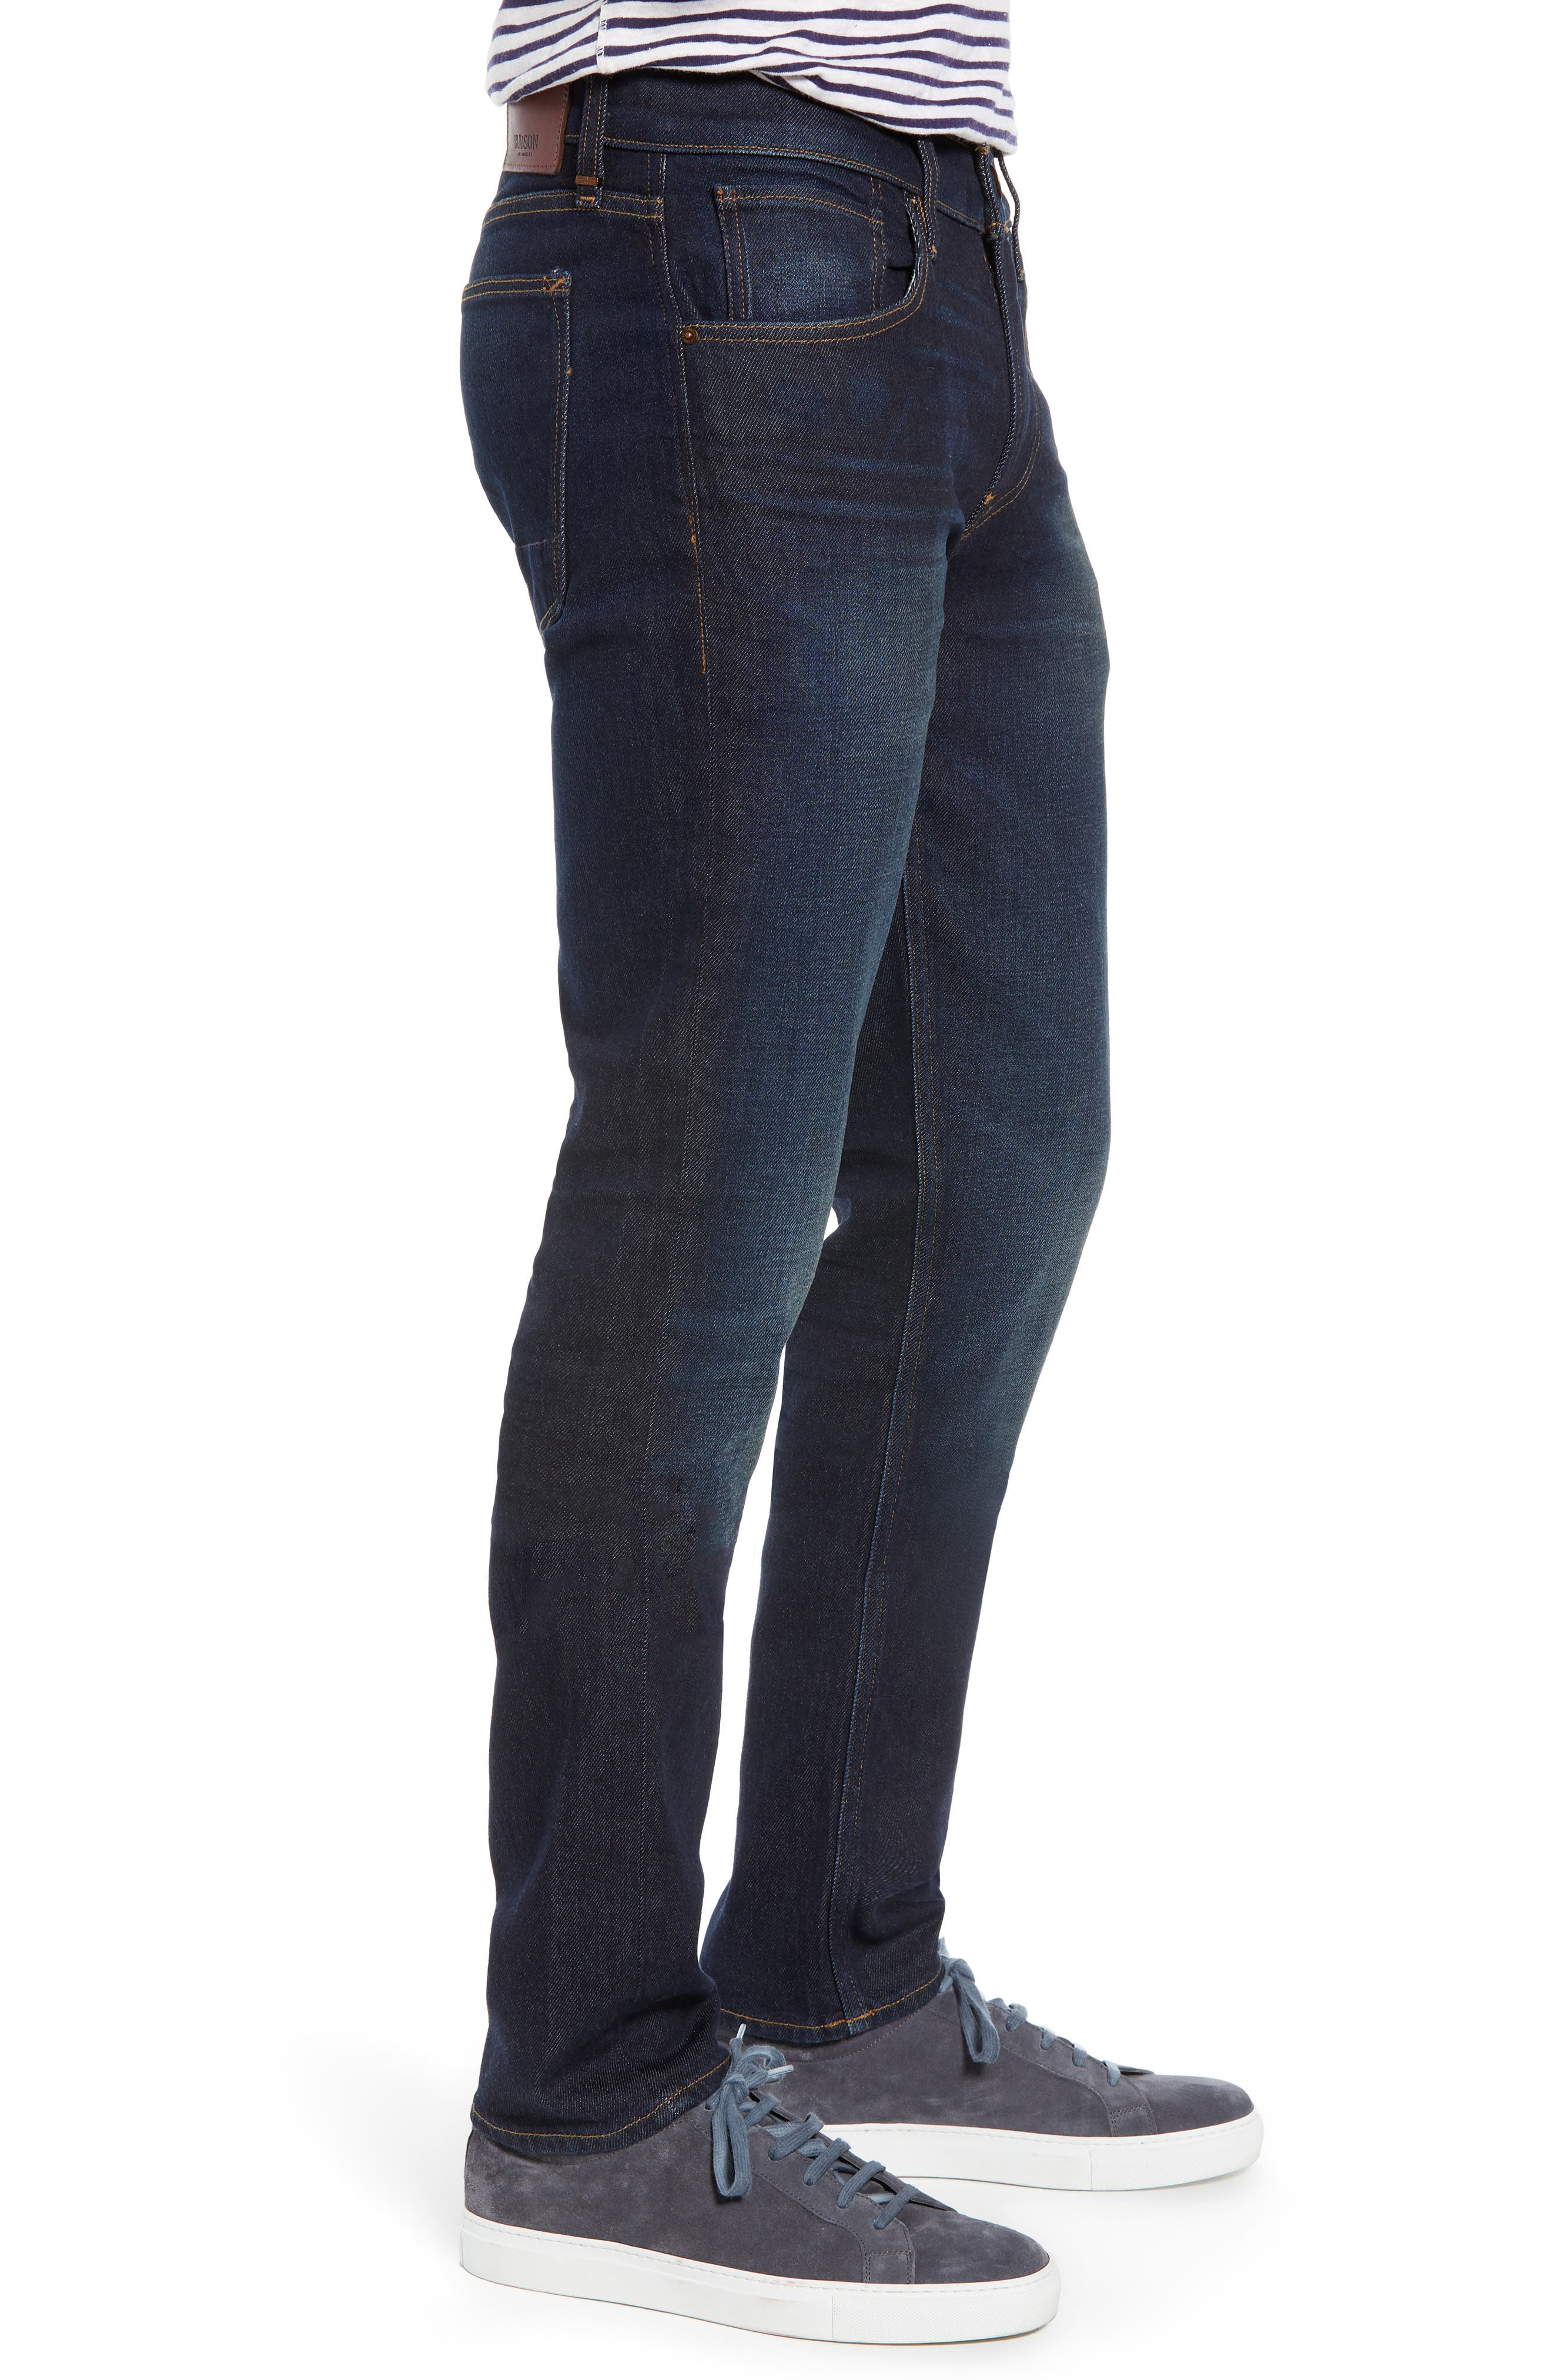 HUDSON JEANS, Blake Slim Fit Jeans, Alternate thumbnail 3, color, VERKLER